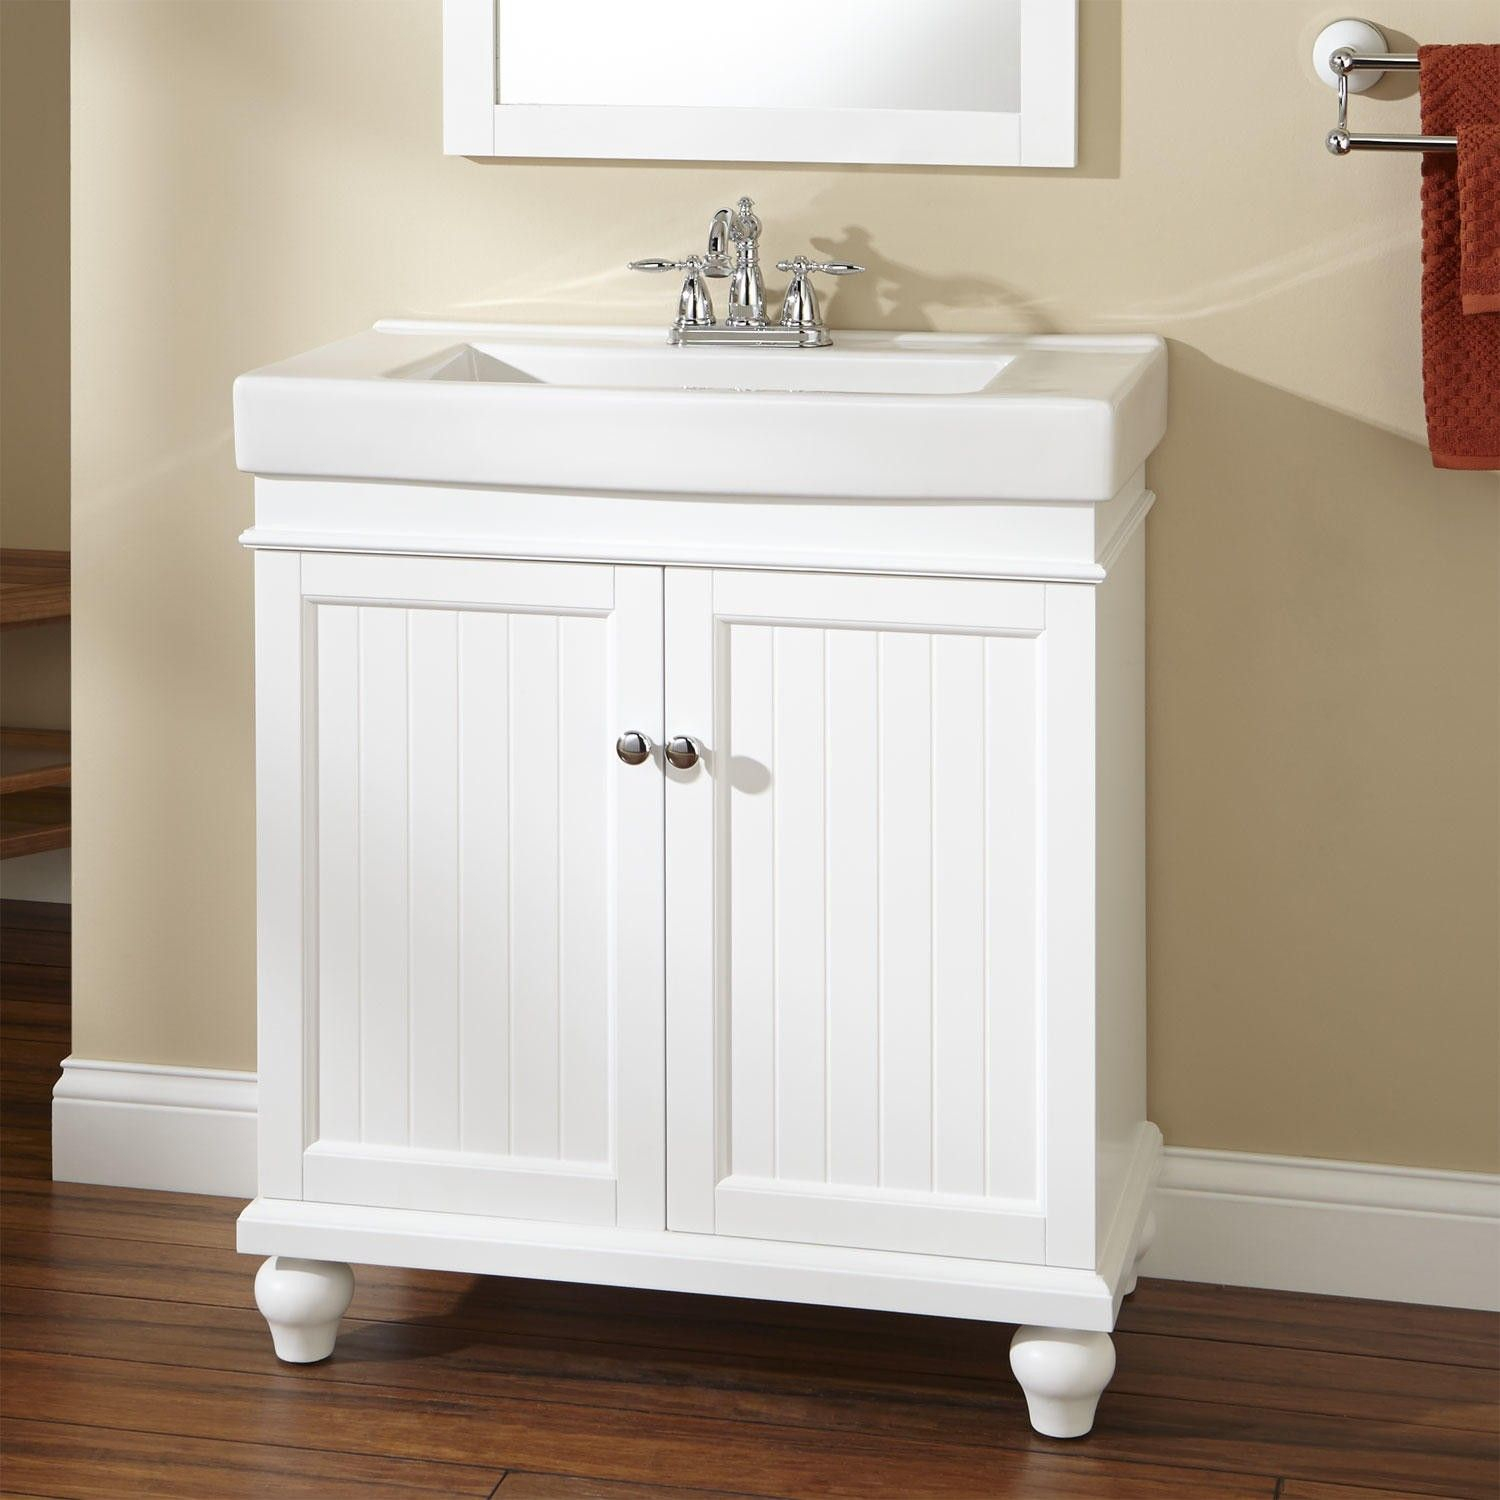 Cool 30 Lander Vanity White Pinterest Vanities Bath And Bathroom Within 30 Bathroom Vanity With Drawers Ideas House Generation